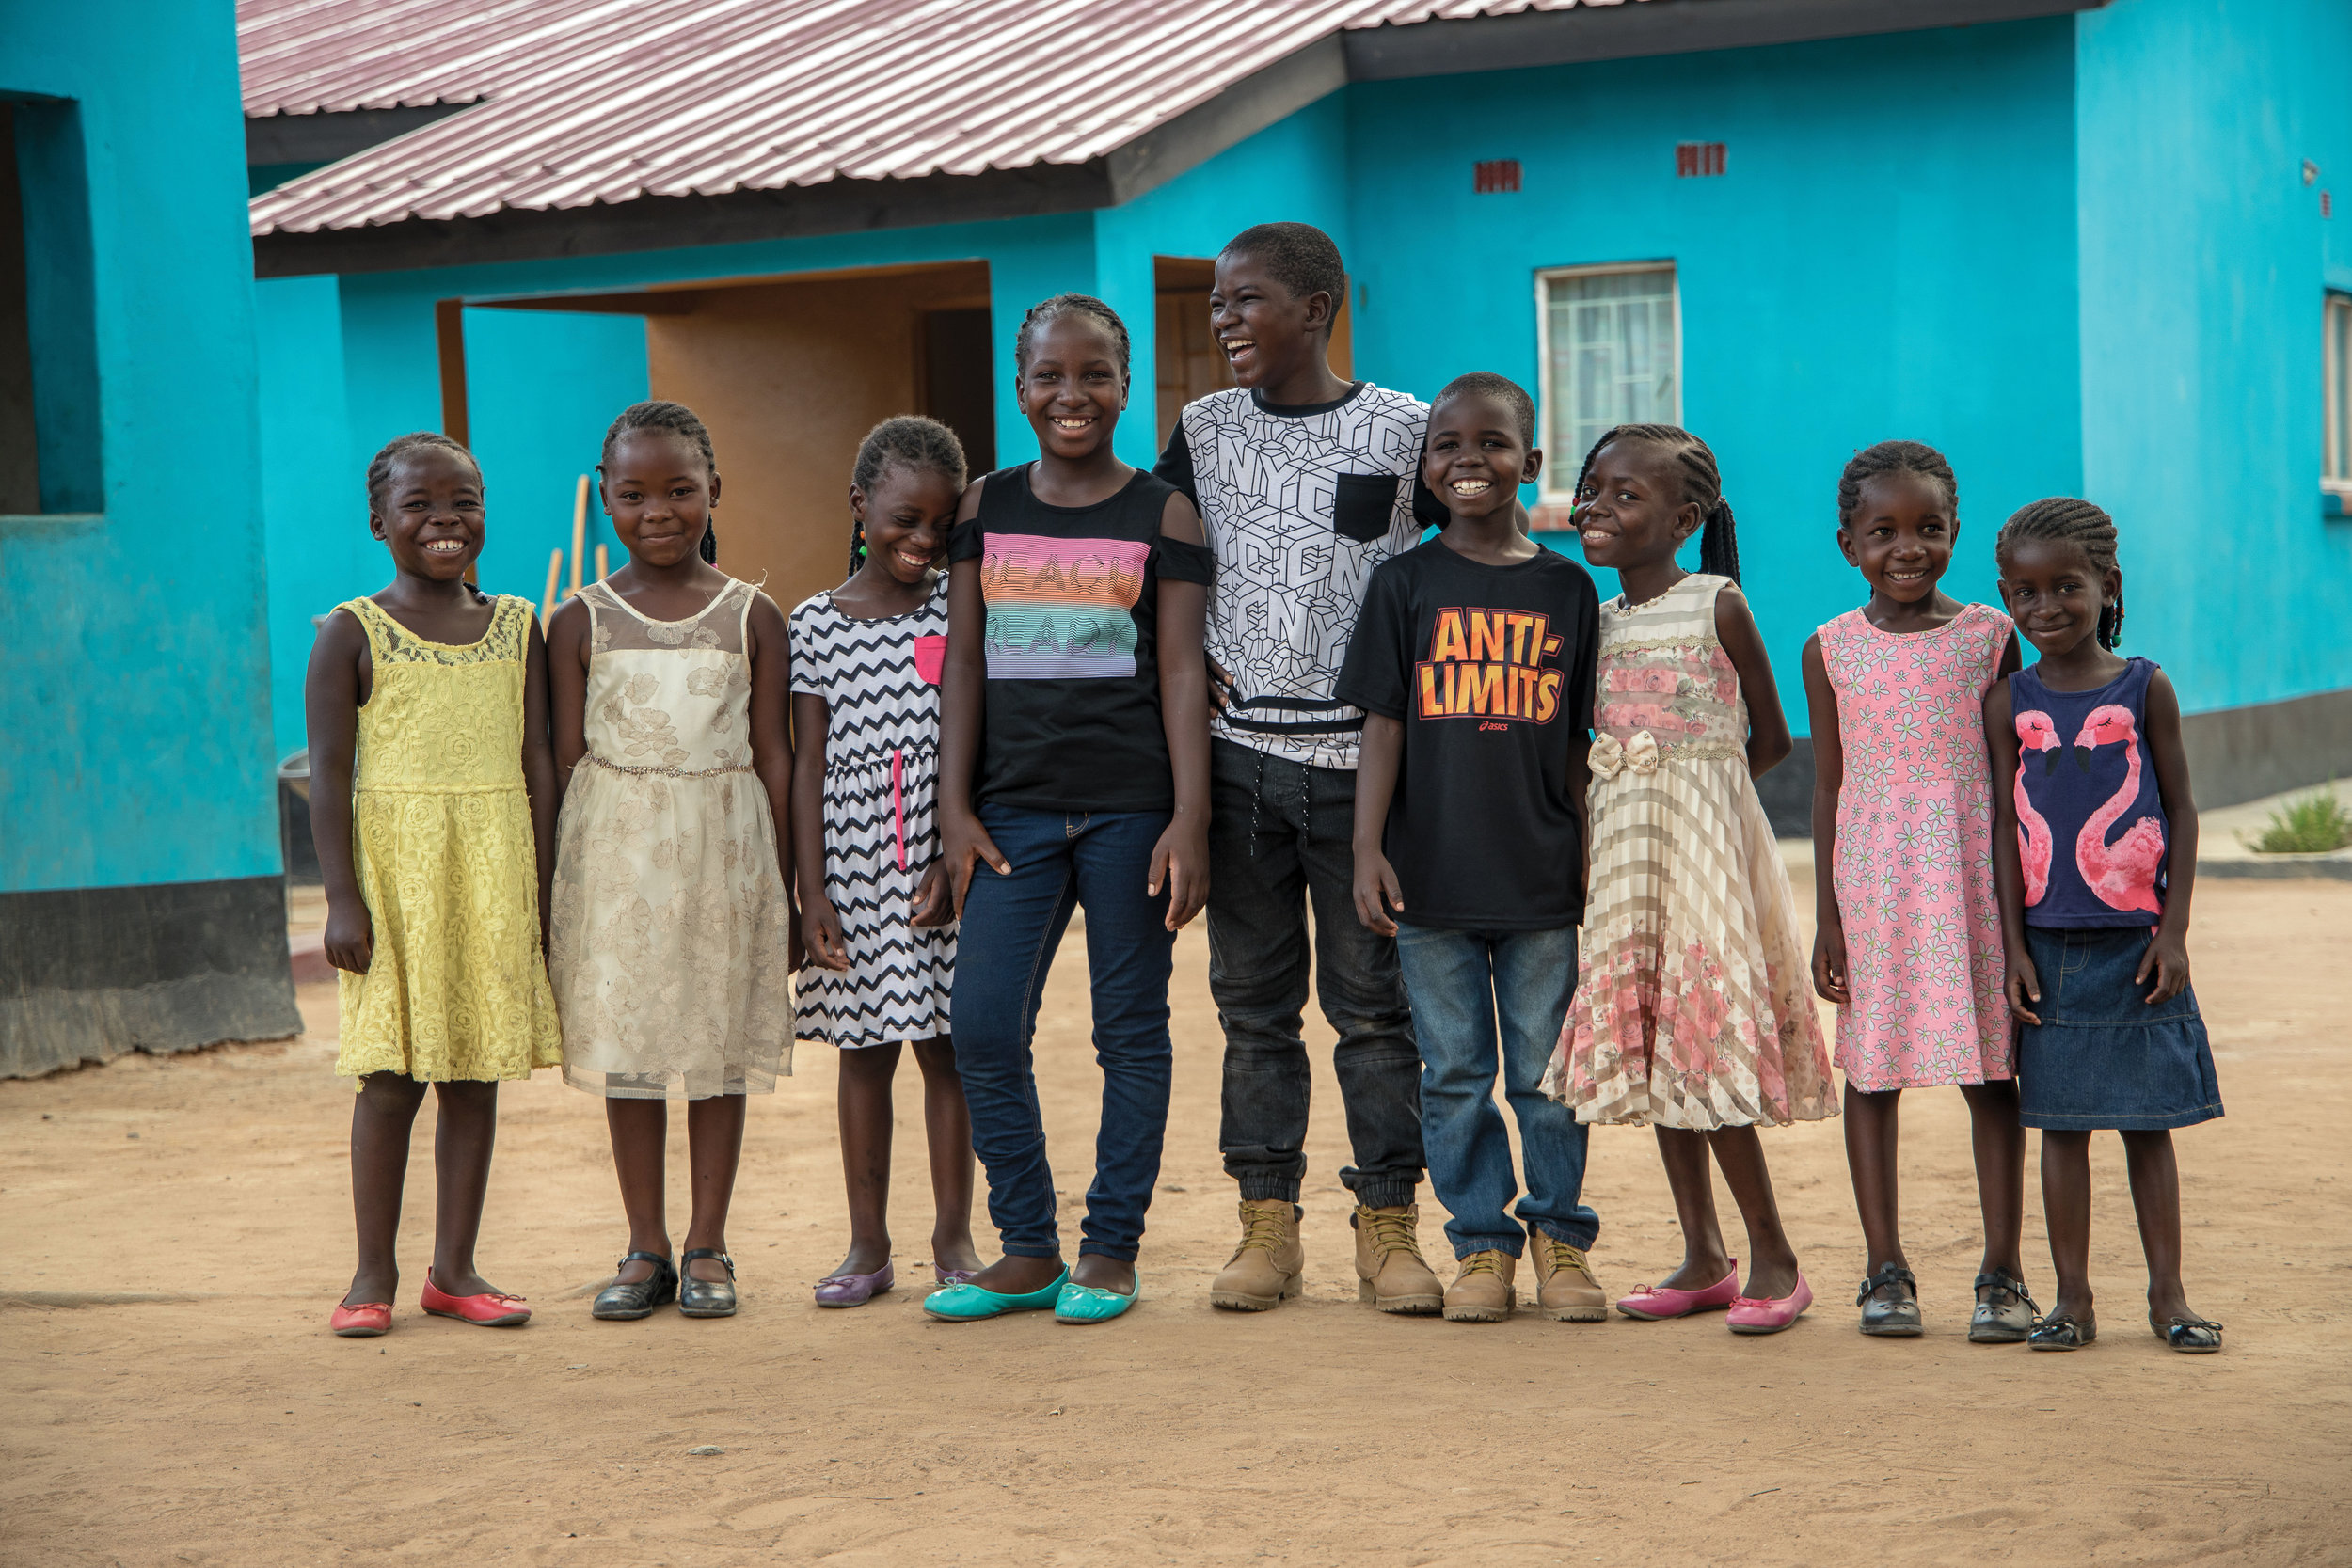 The children in front of their Life Okendewa home (the Love Abounds home for orphaned and abandoned children). L to R: Esther, Hope, Sharon, Frieda, Godfrey, Evans, Josephine, Juliette, and JoJo.